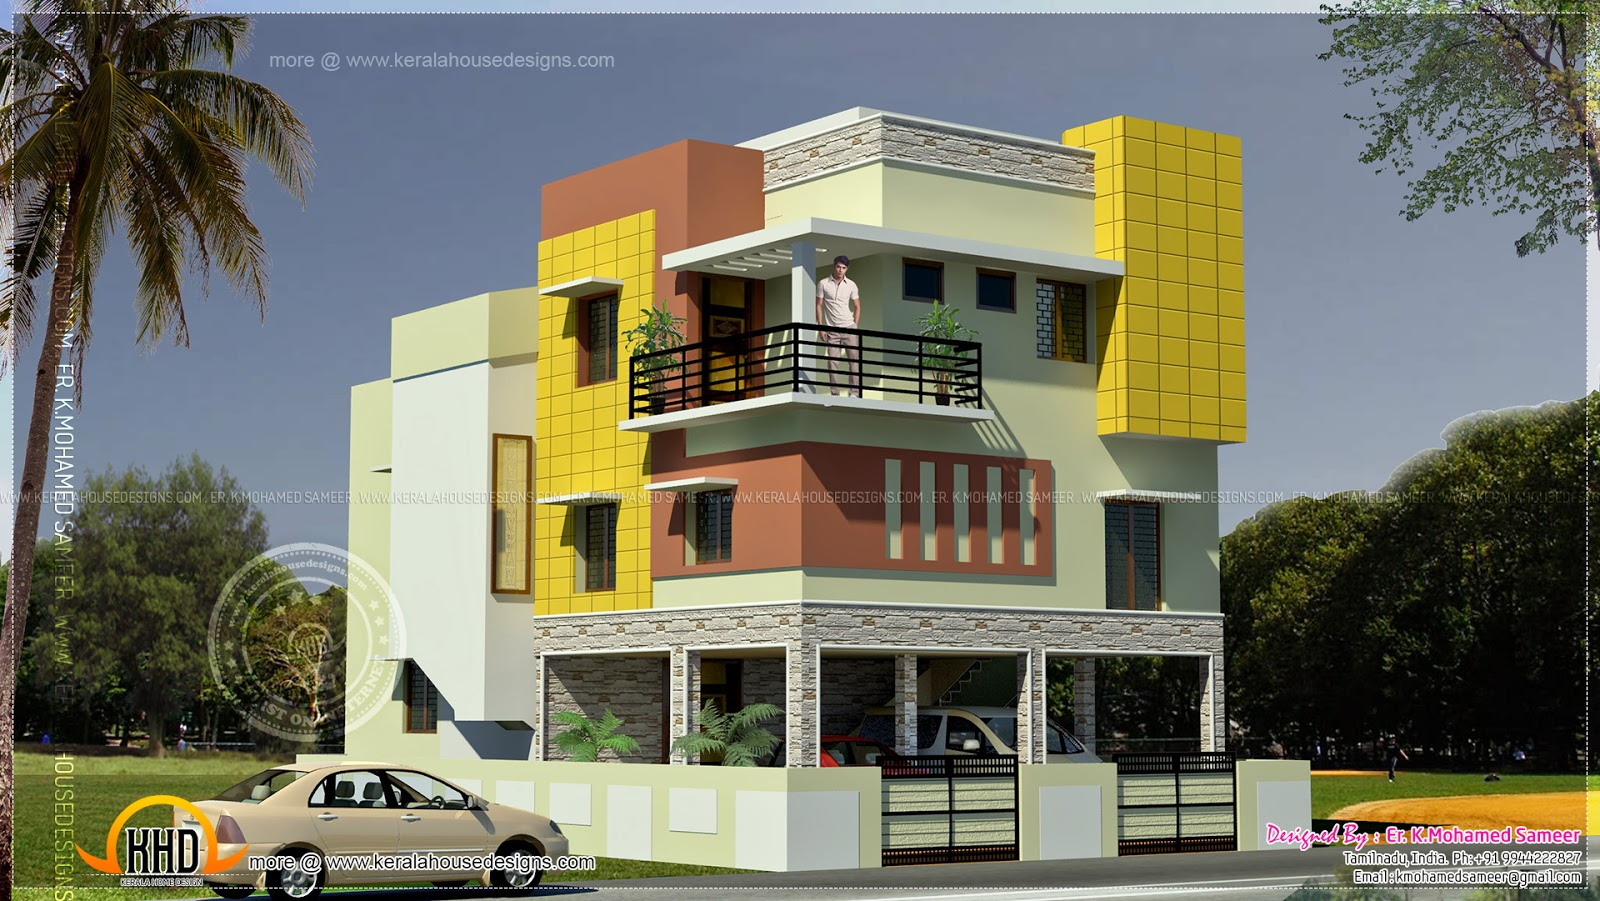 Duplex house in tamilnadu kerala home design and floor plans for Tamilnadu house designs photos